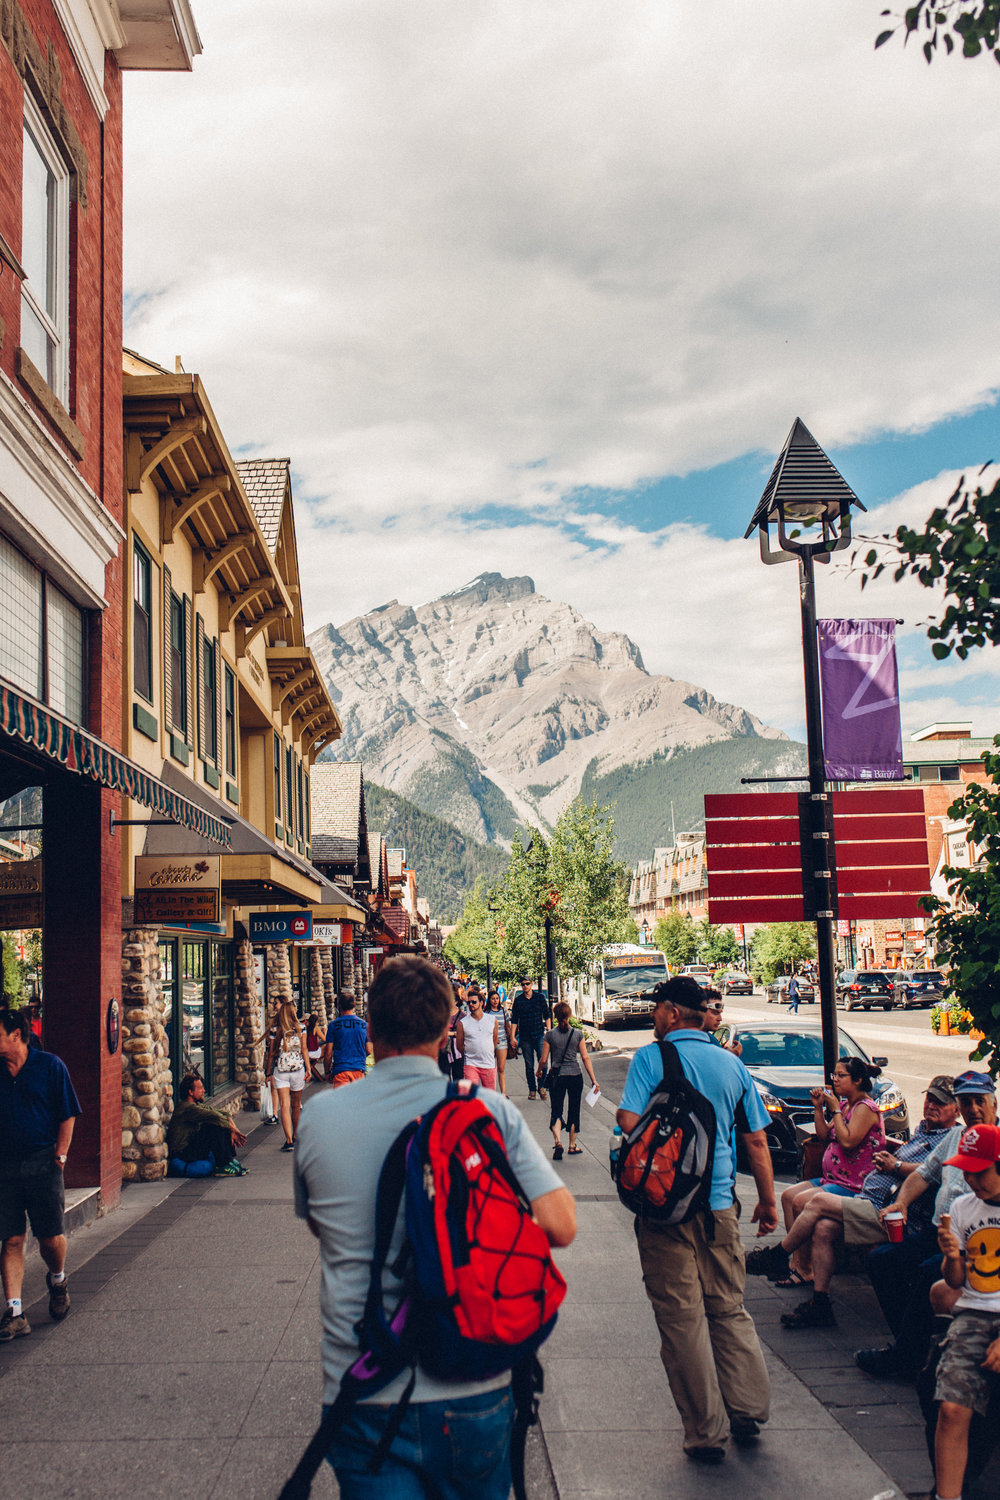 Downtown Banff, home to a Billabong store, a zoo, and a pissed off laundromat lady who really needs to calm down it was just one bag of clothes.